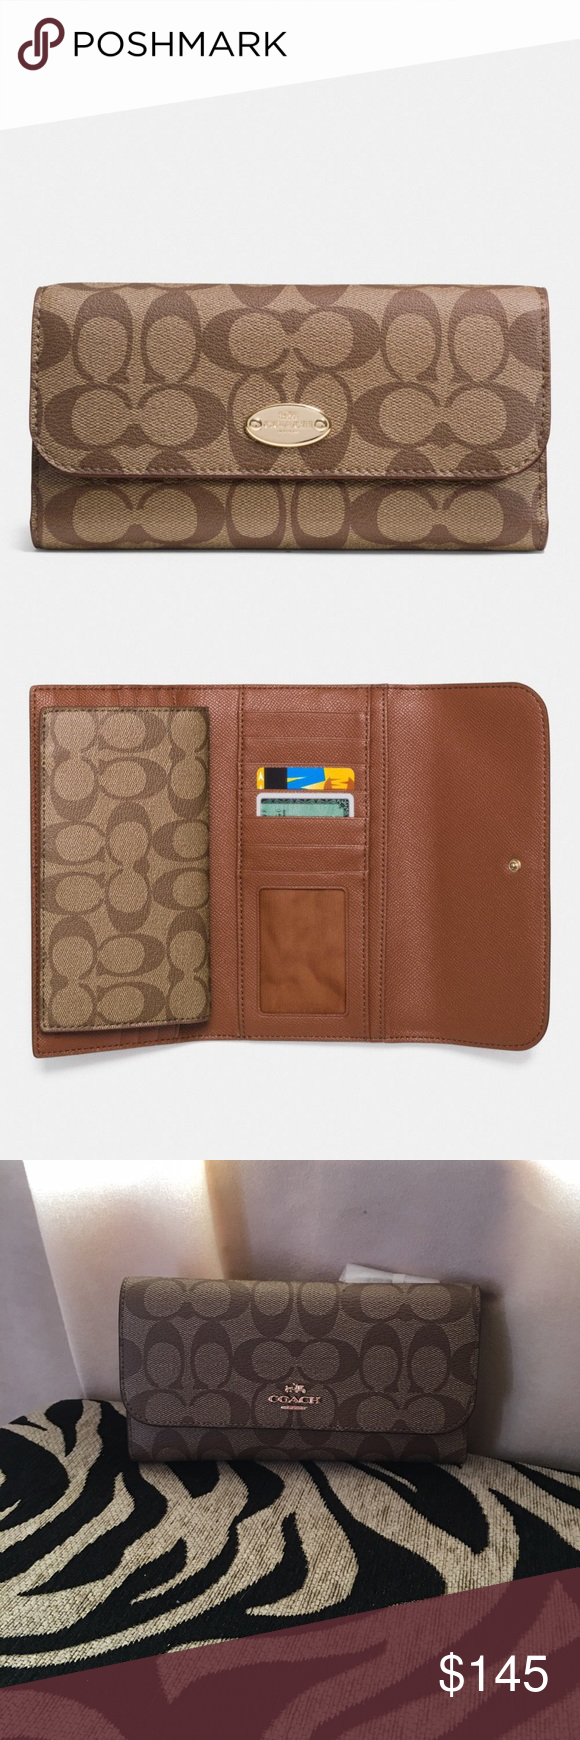 9ff98e5d381e Coach Checkbook Wallet in Signature Signature coated canvas with leather  trim Credit card and multifunction pockets Full-length bill compartments  Removable ...